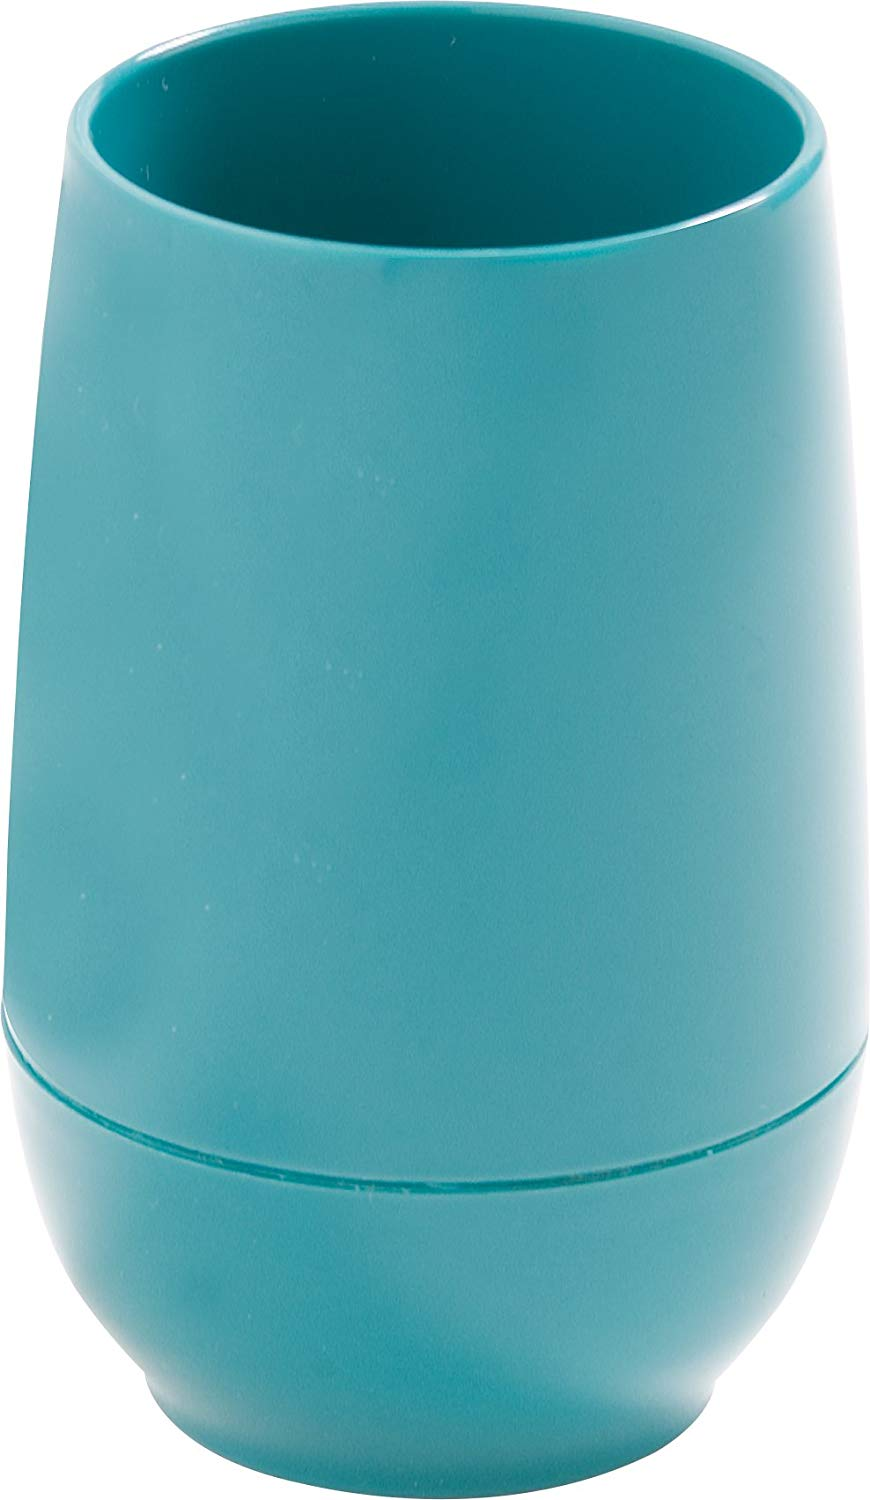 """Dinex DX119215 Urethane Foam Insulated Juice Cup, 2-39/64"""" Diameter x 4-7/64"""" Height, 6 oz. Capacity,, 2.625"""" Length, 2.625"""" Width, 8.75"""" Height, Teal (pack of 24)"""